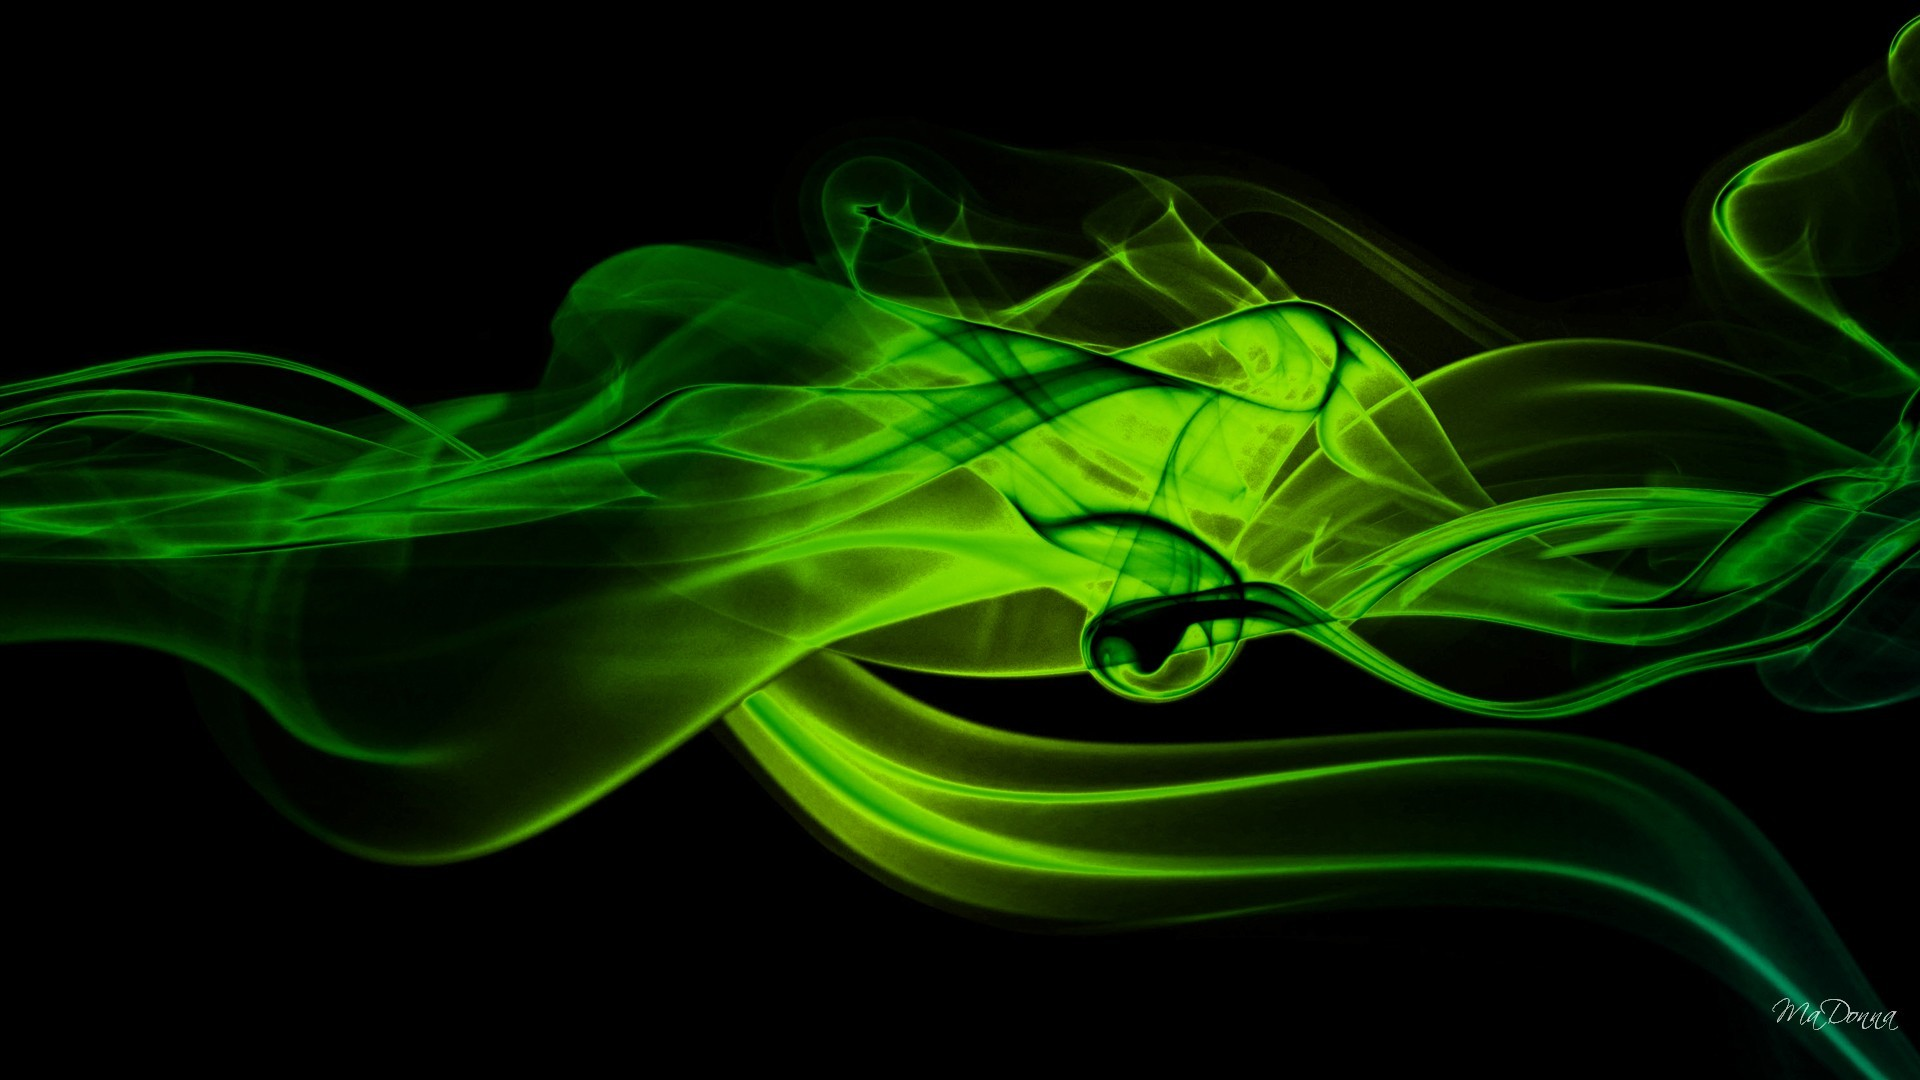 smoke 3d hd wallpapers smoke 3d hd wallpapers smoke 3d pictures